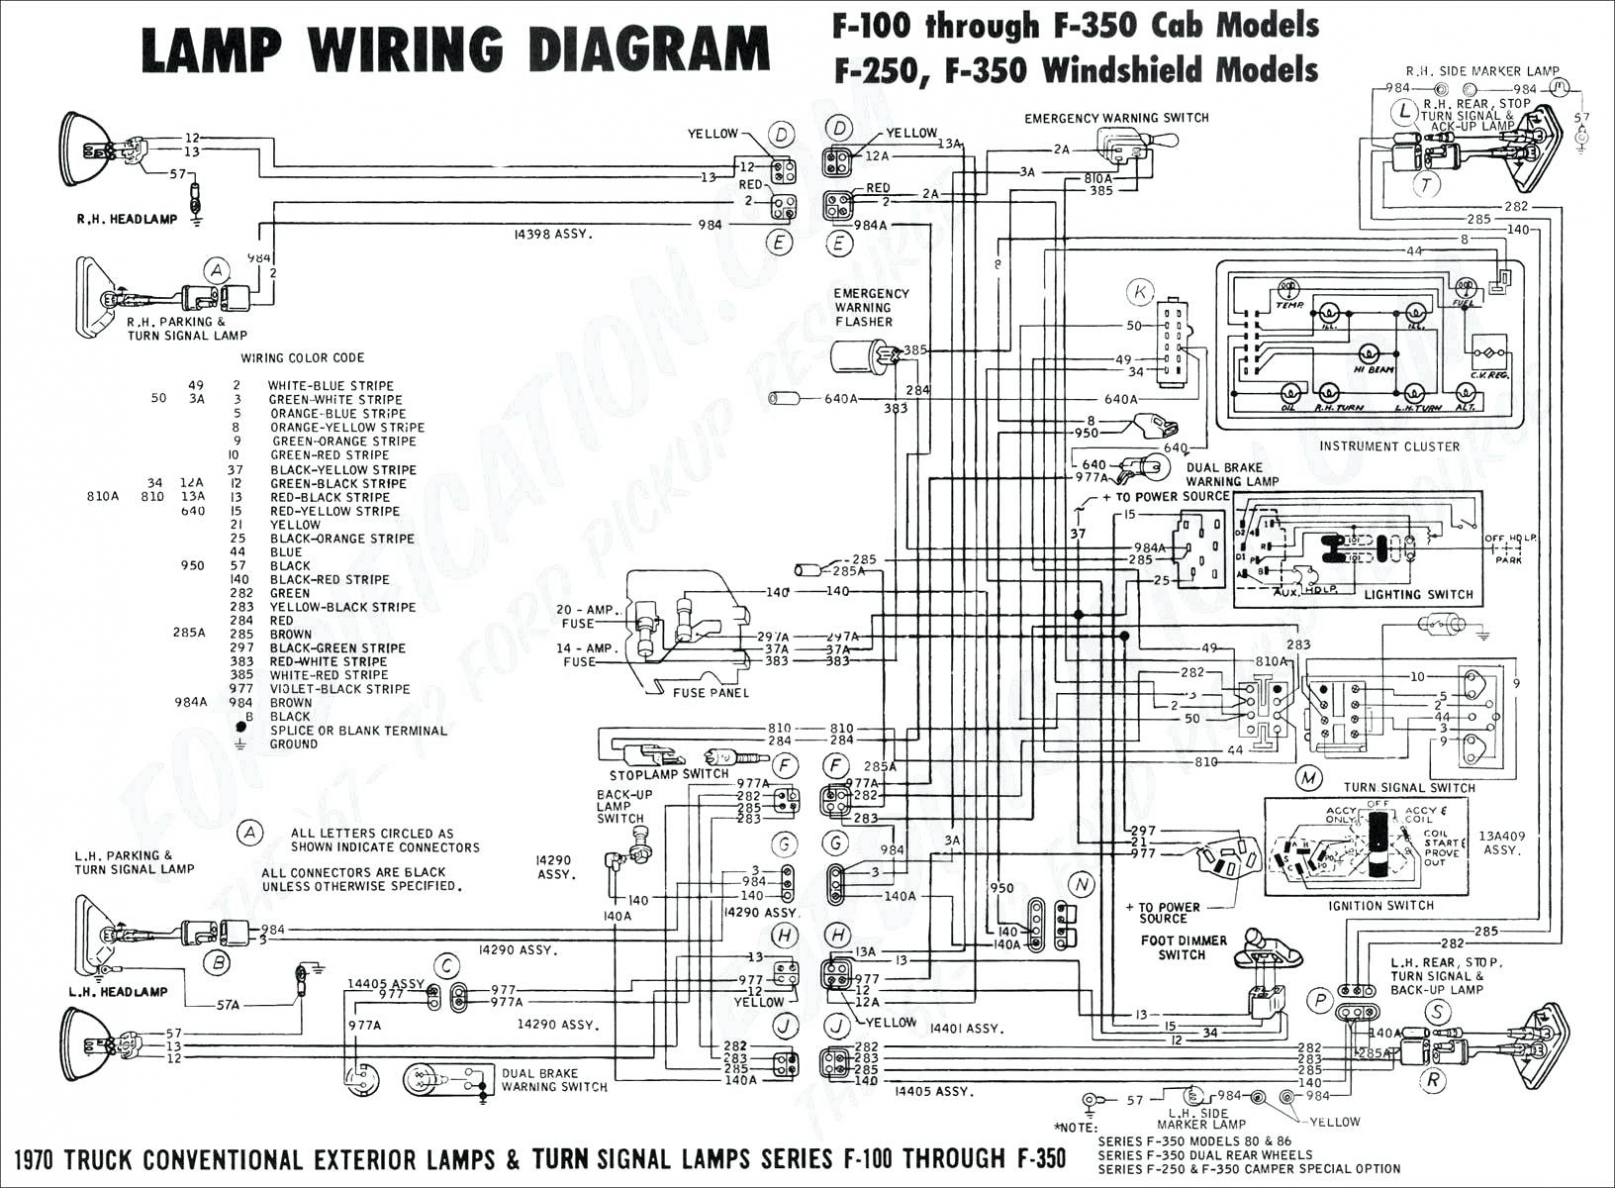 ford one wire alternator wiring diagram Download-e Wire Alternator Wiring Diagram – E Wire Alternator Wiring Diagram Moreover Ford F 150 Trailer 3-j